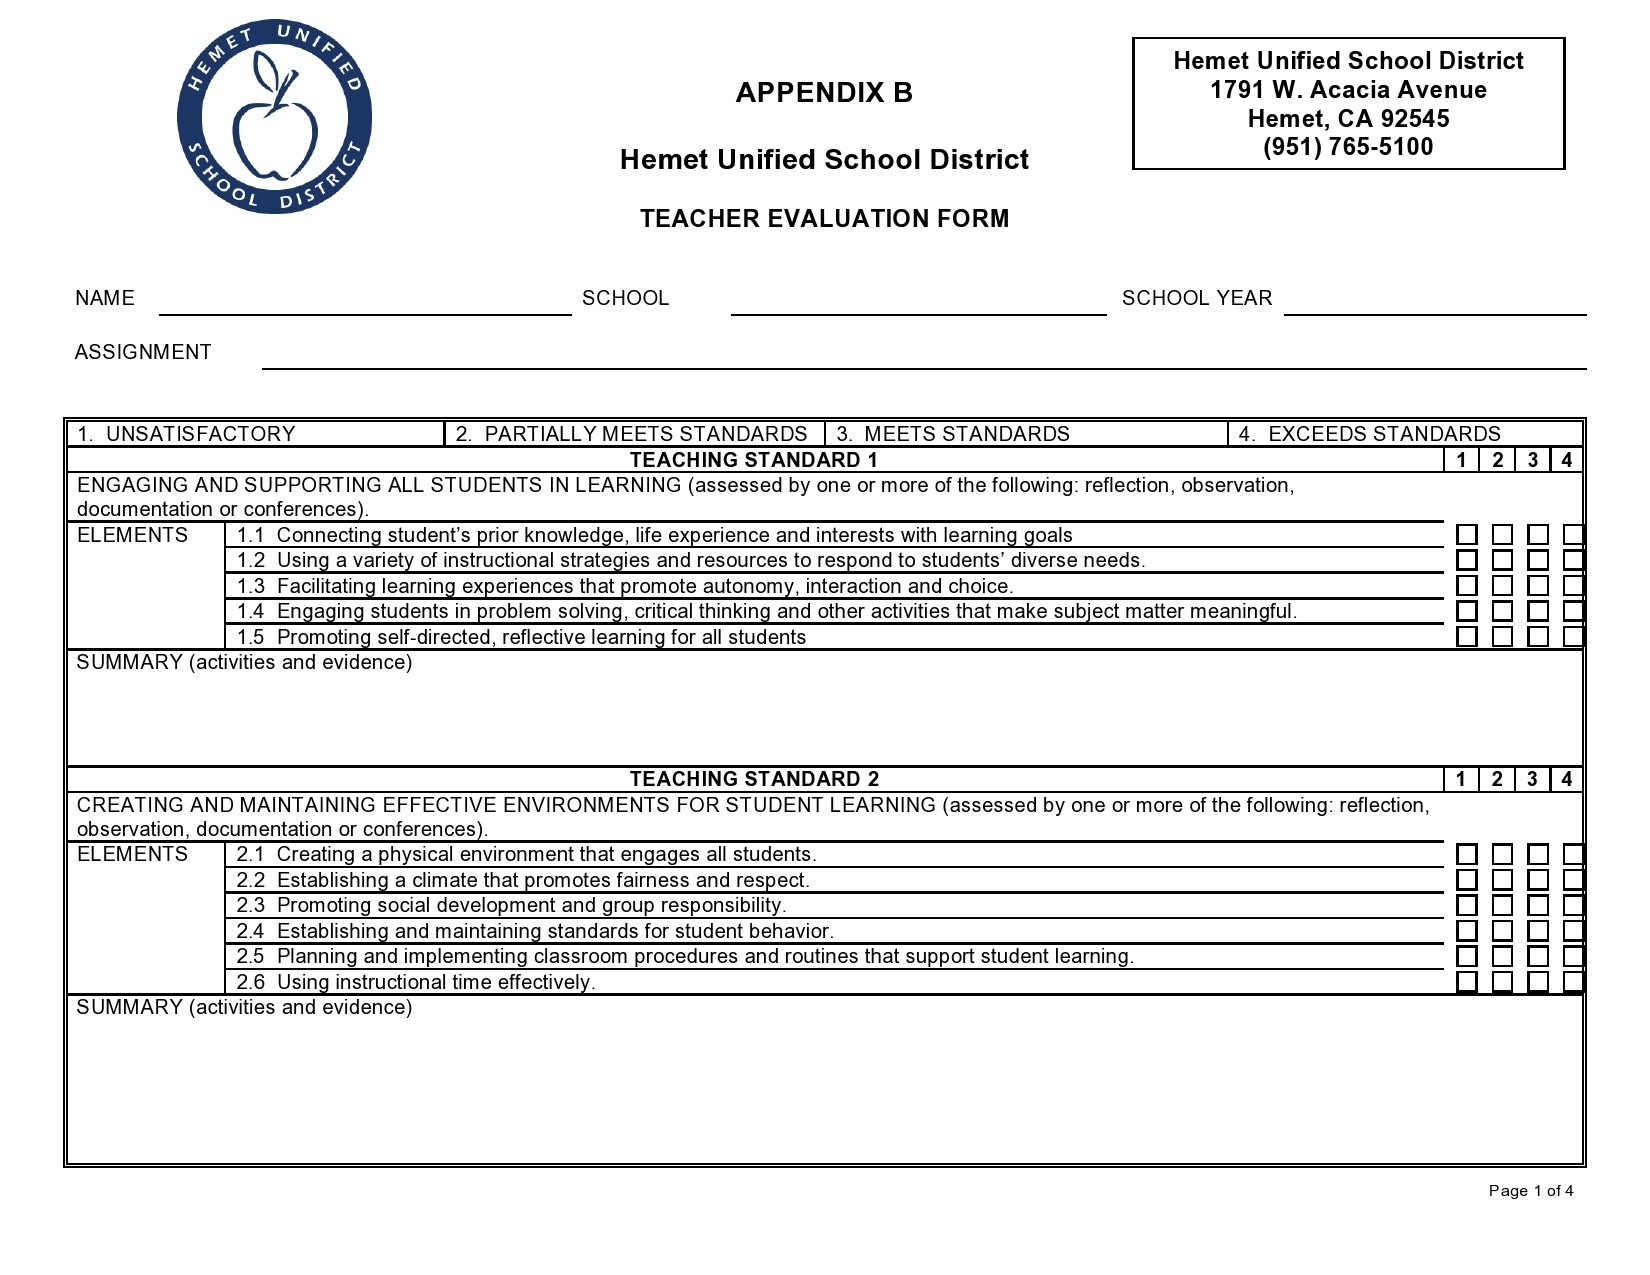 Free teacher evaluation form 42